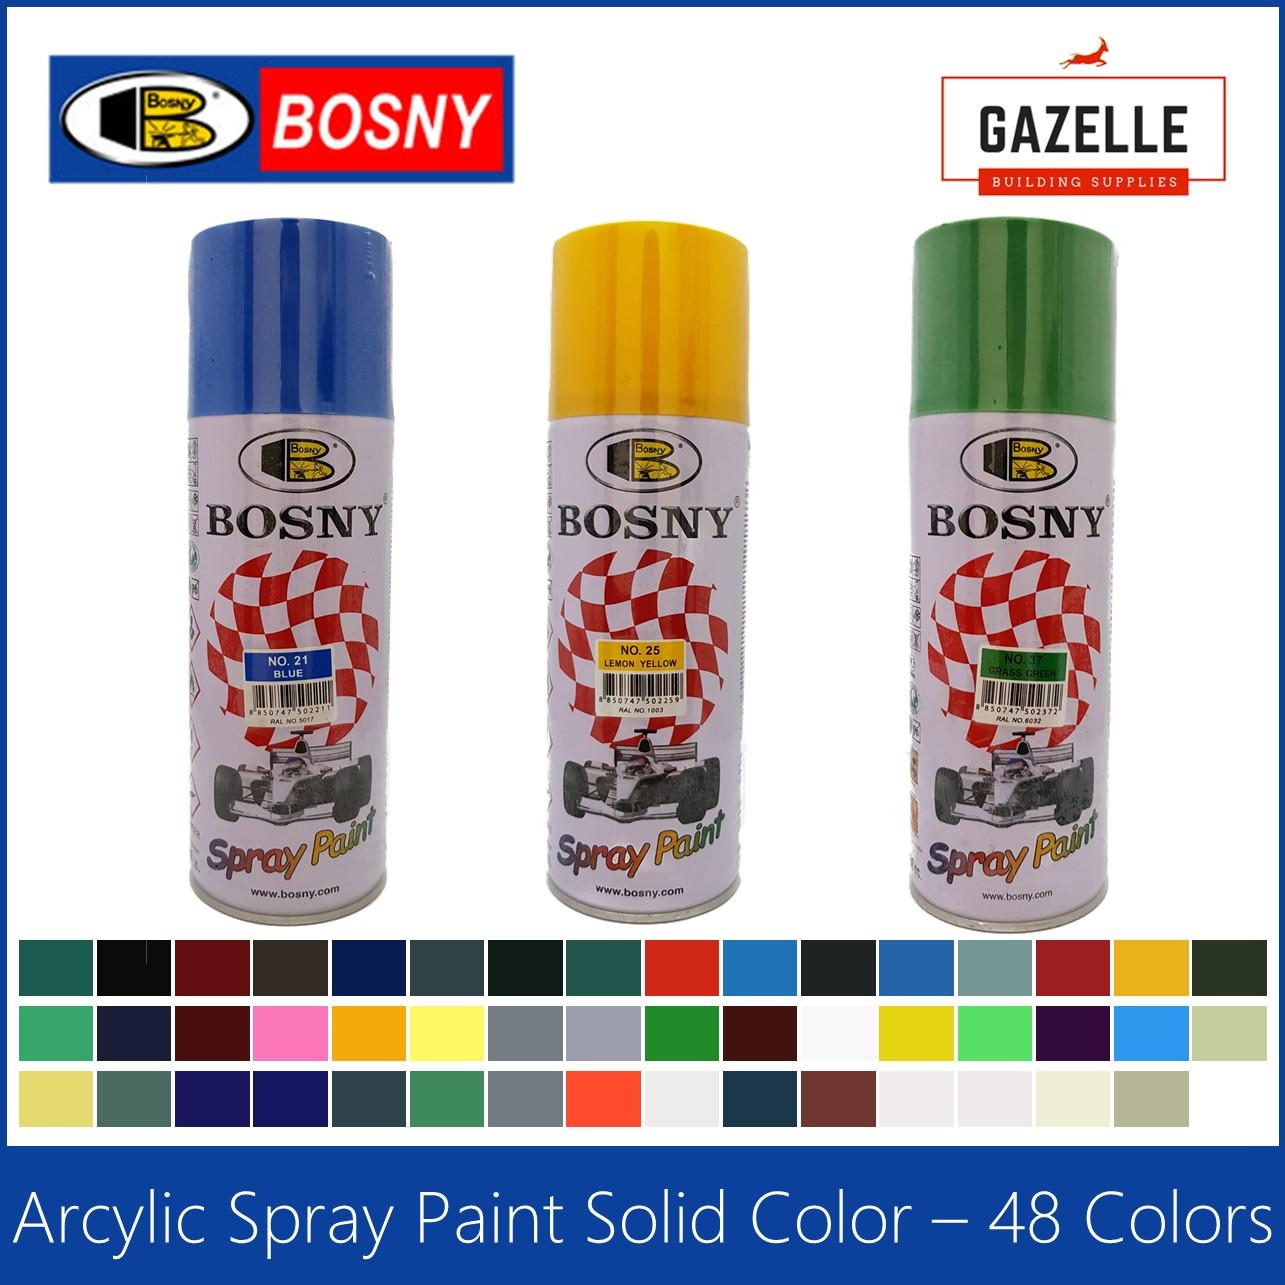 Bosny Acrylic Spray Paint 48 colors - 190 Clear / 191 Clear Flat / 4 Flat  Black / 39 Black